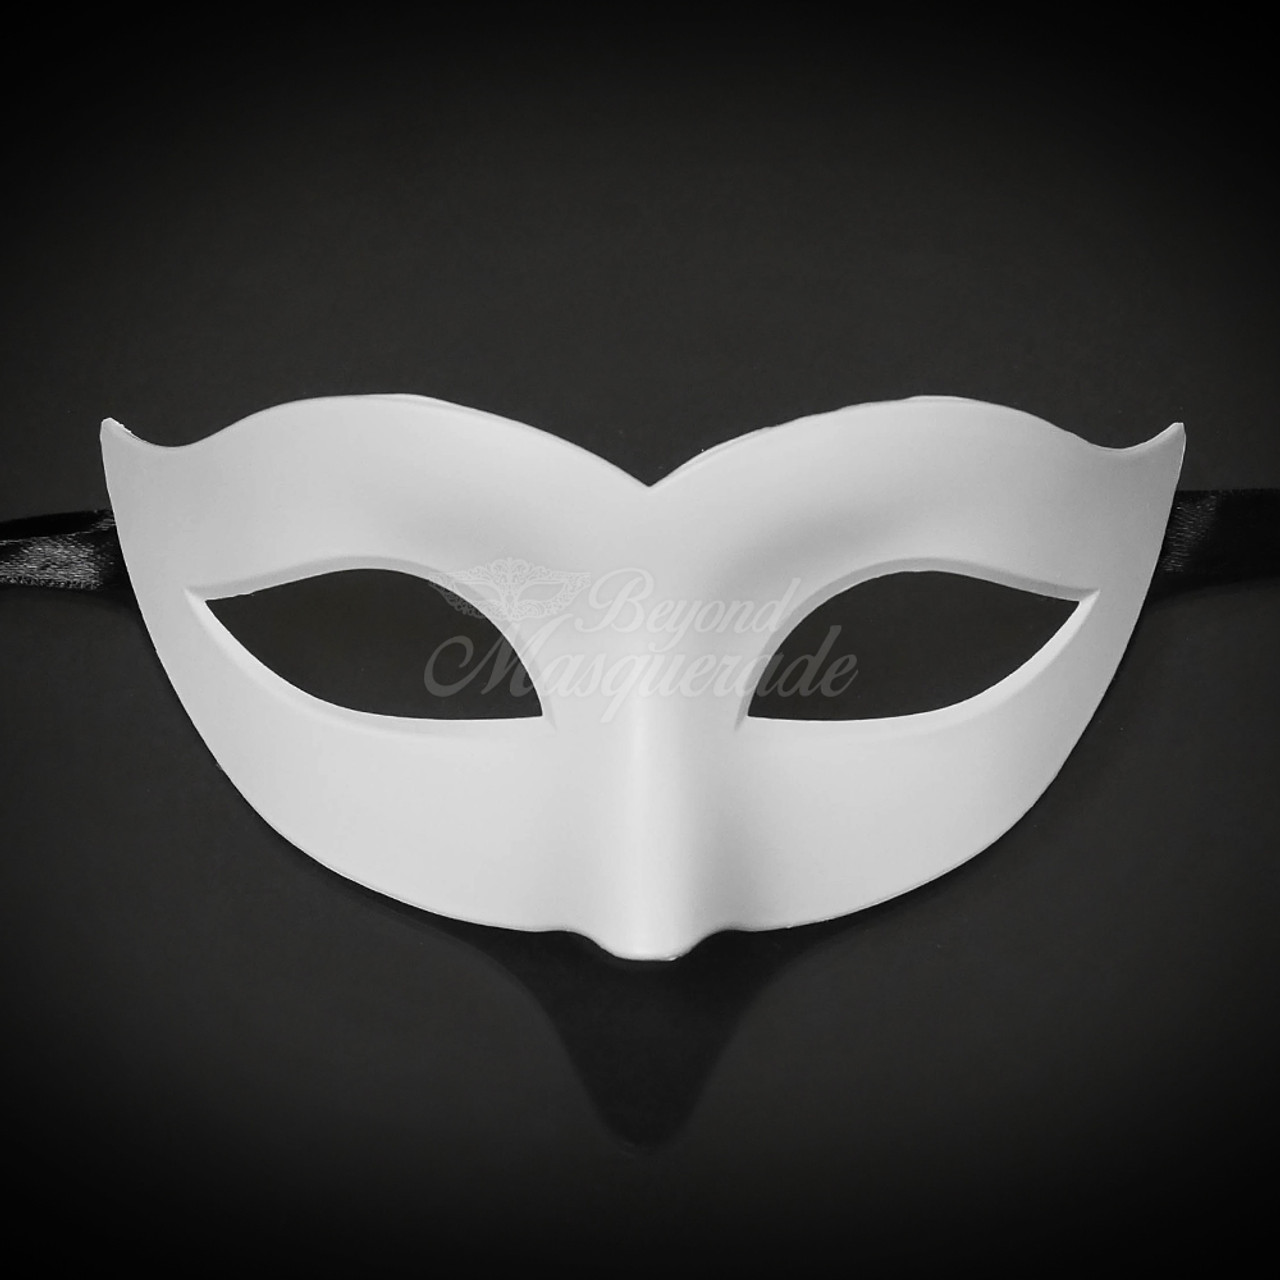 58be885f5eac Blank White Mask Masque Unpainted White Mask DIY Mask DIY Masquerade Mask